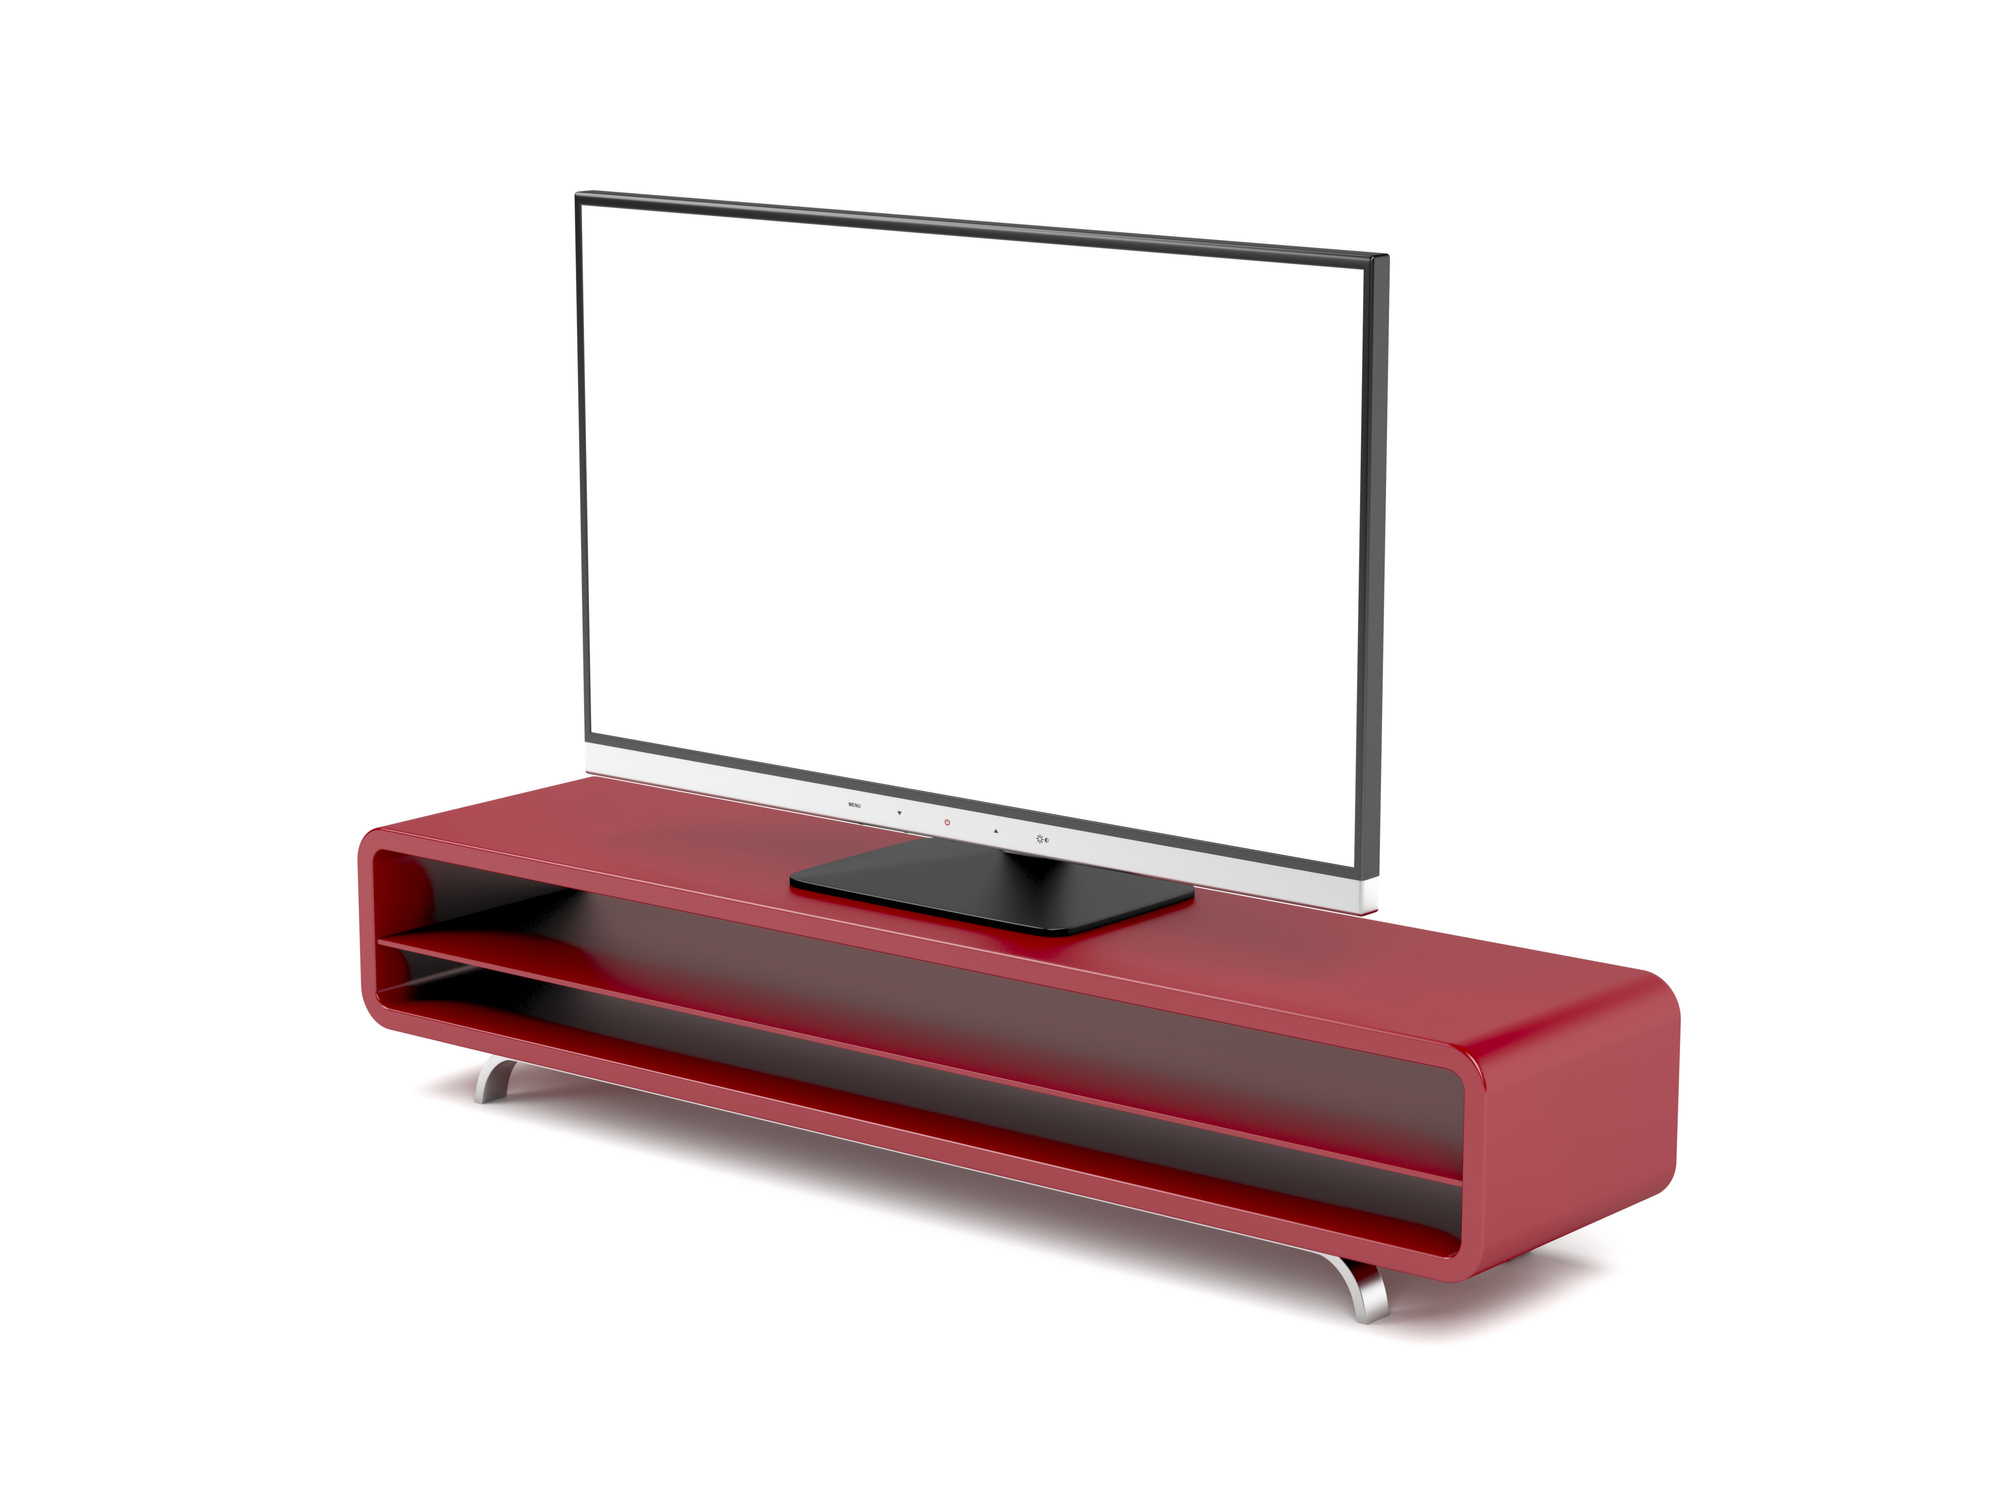 Tv with stand on white background